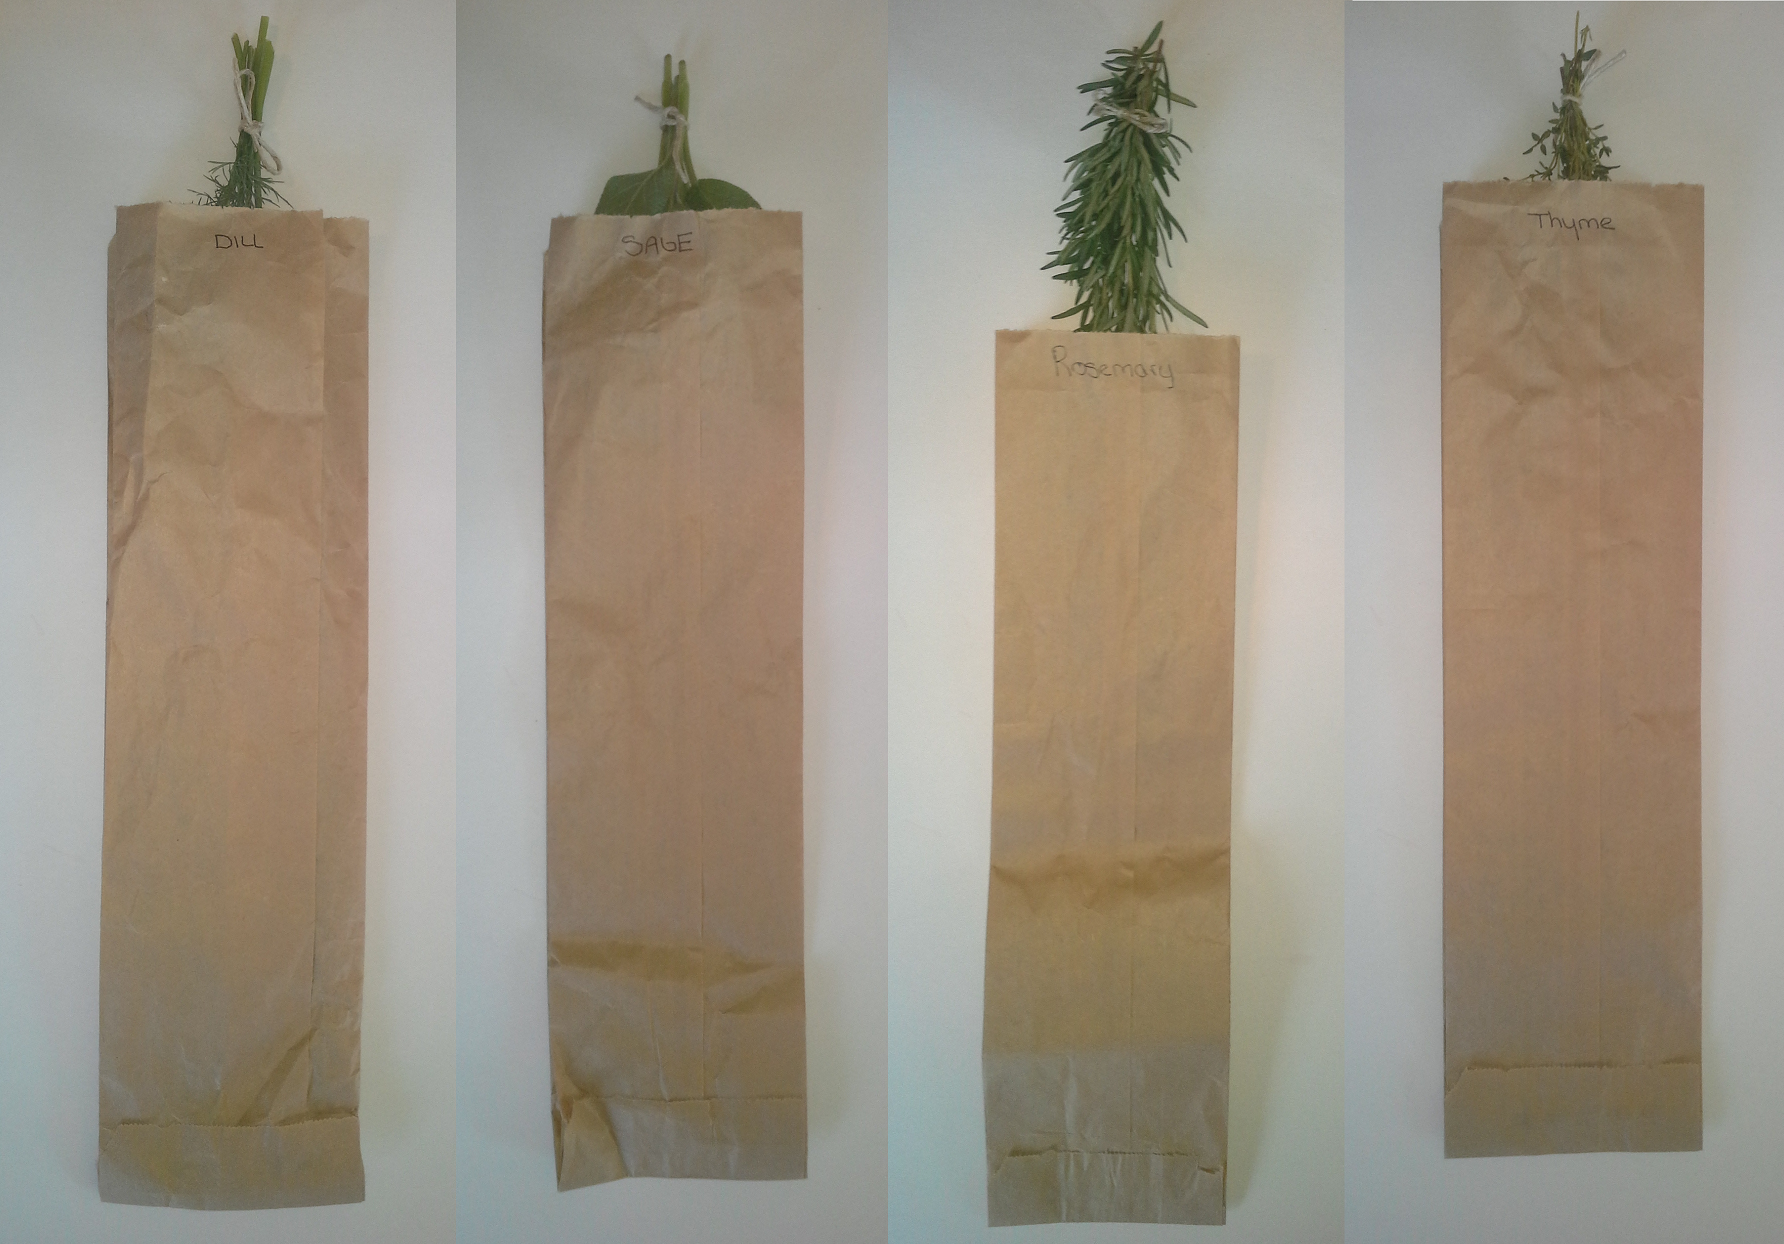 Dry herbs upside down in a paper bag